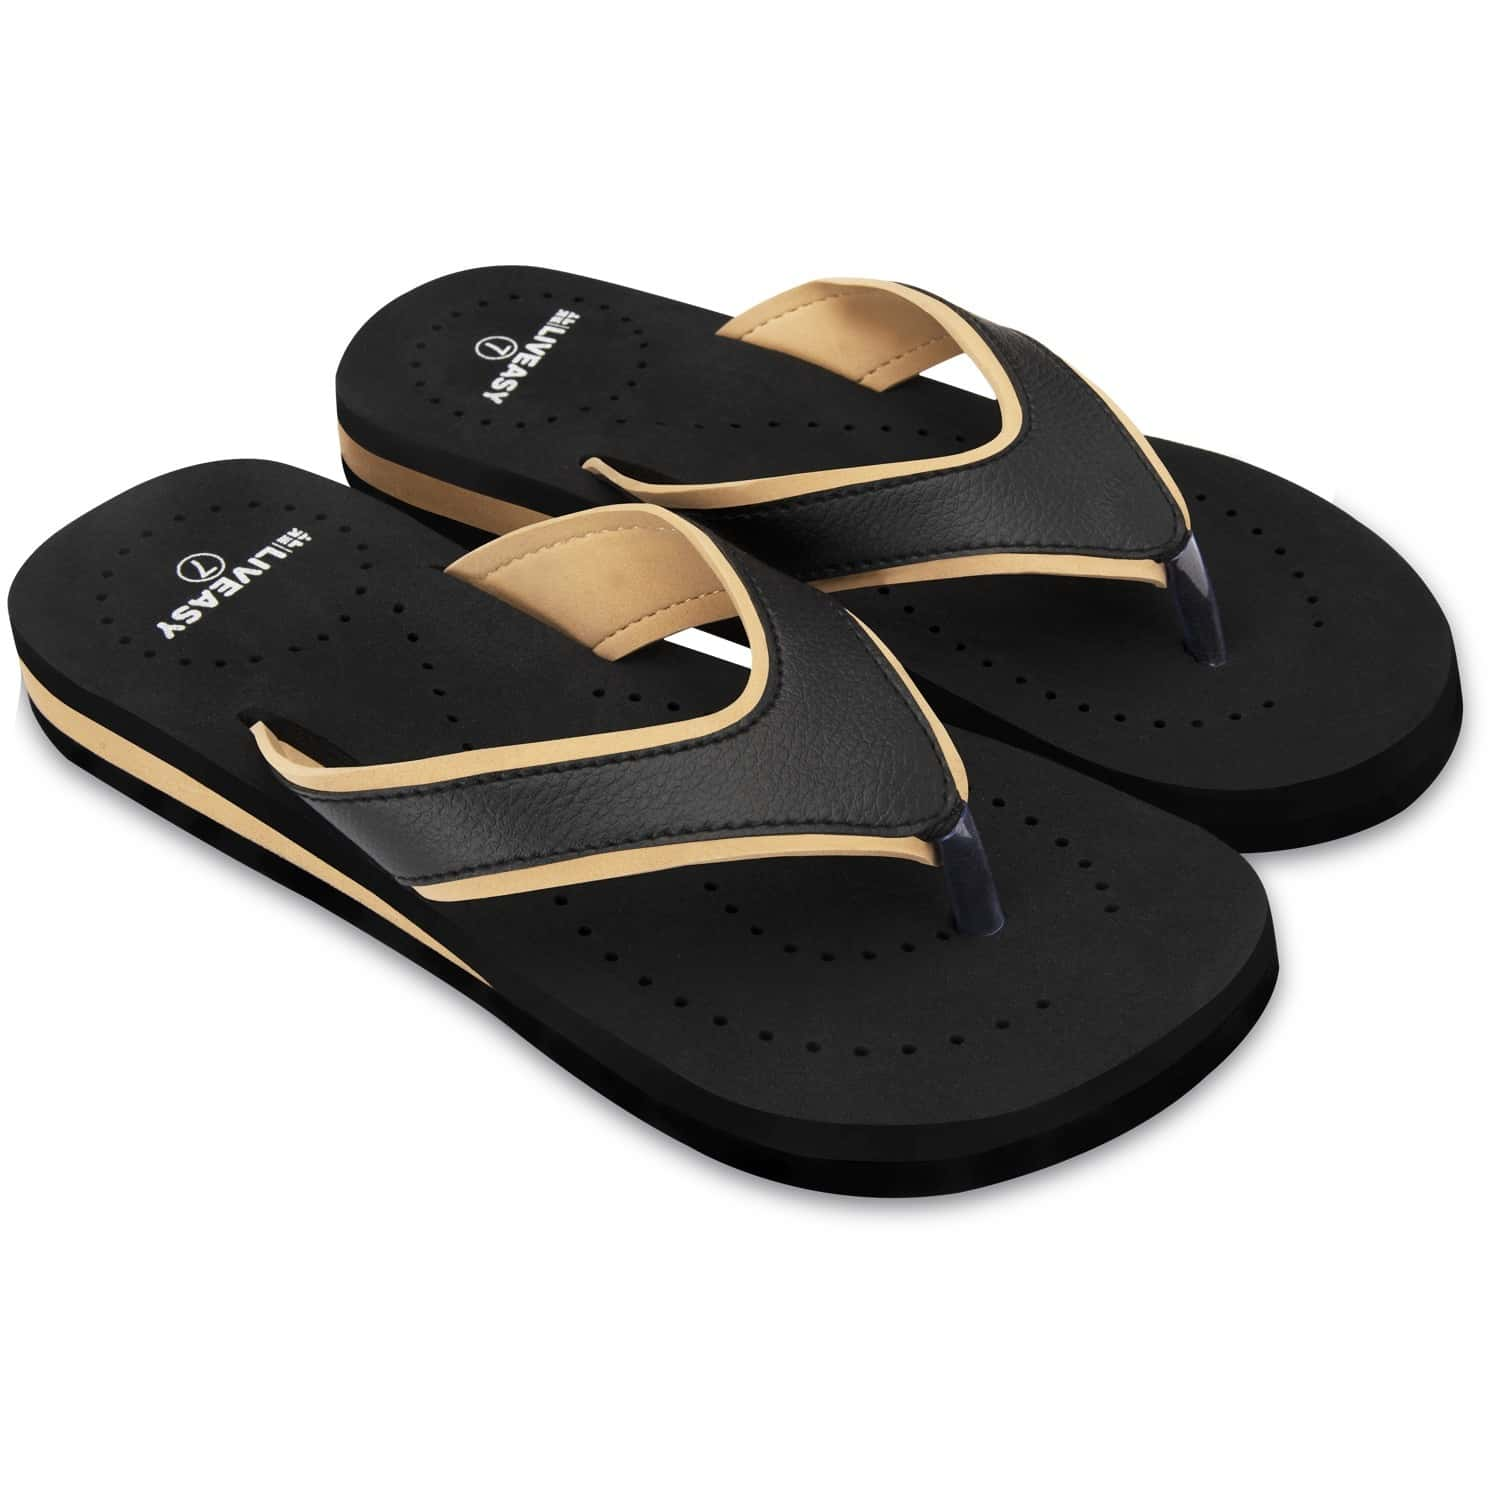 Liveasy Essentials Women's Diabetic & Orthopedic Slippers - Black With Yellow - Size Uk 8 / Us 11